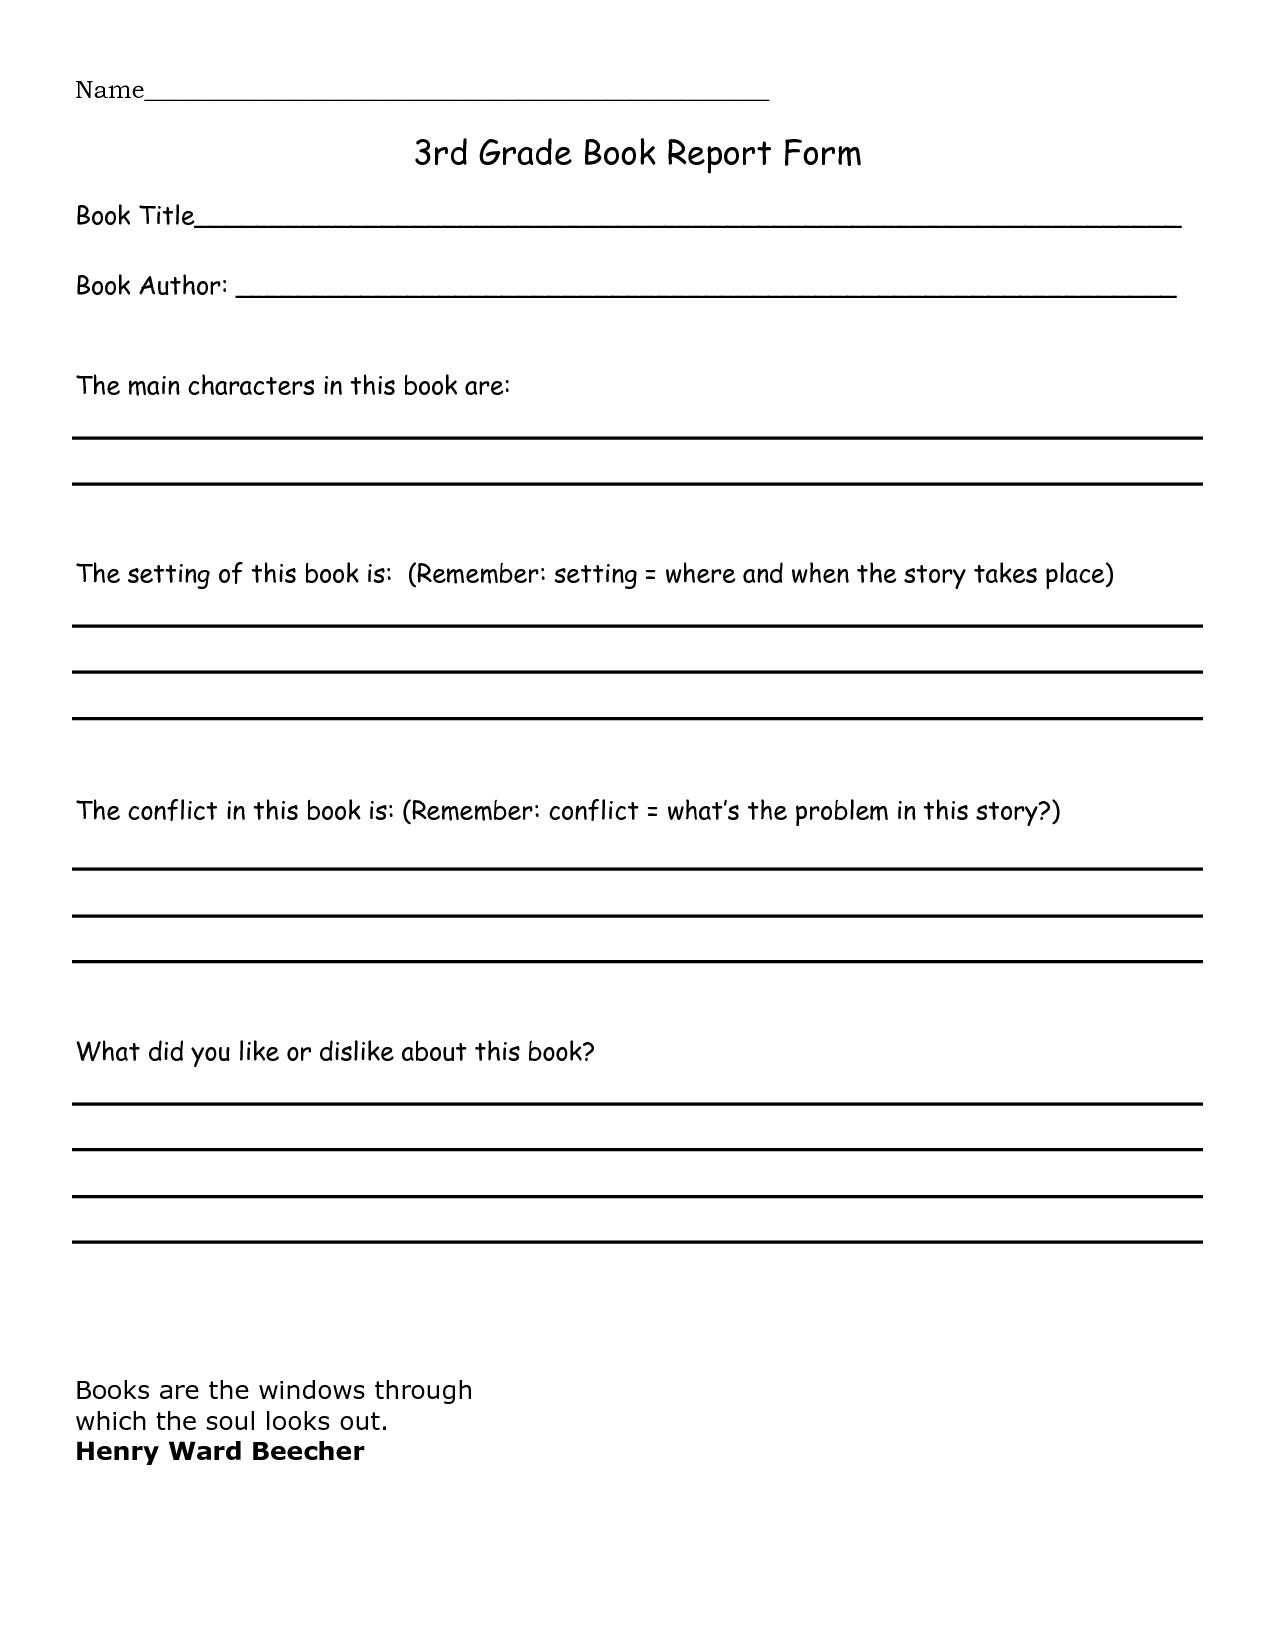 book report 3rd grade template google search home